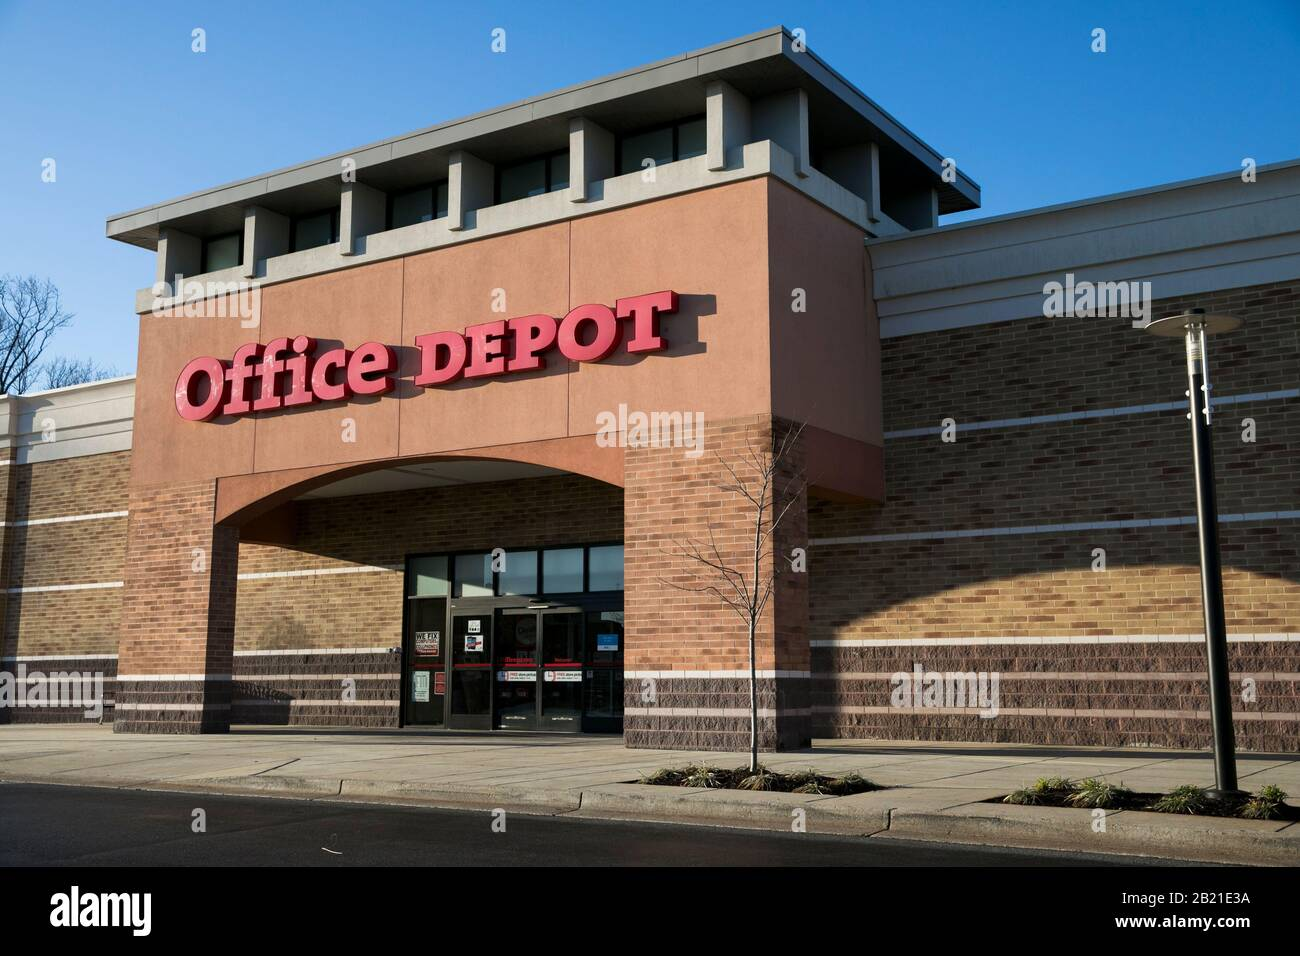 Office Depot Shopping High Resolution Stock Photography And Images Alamy